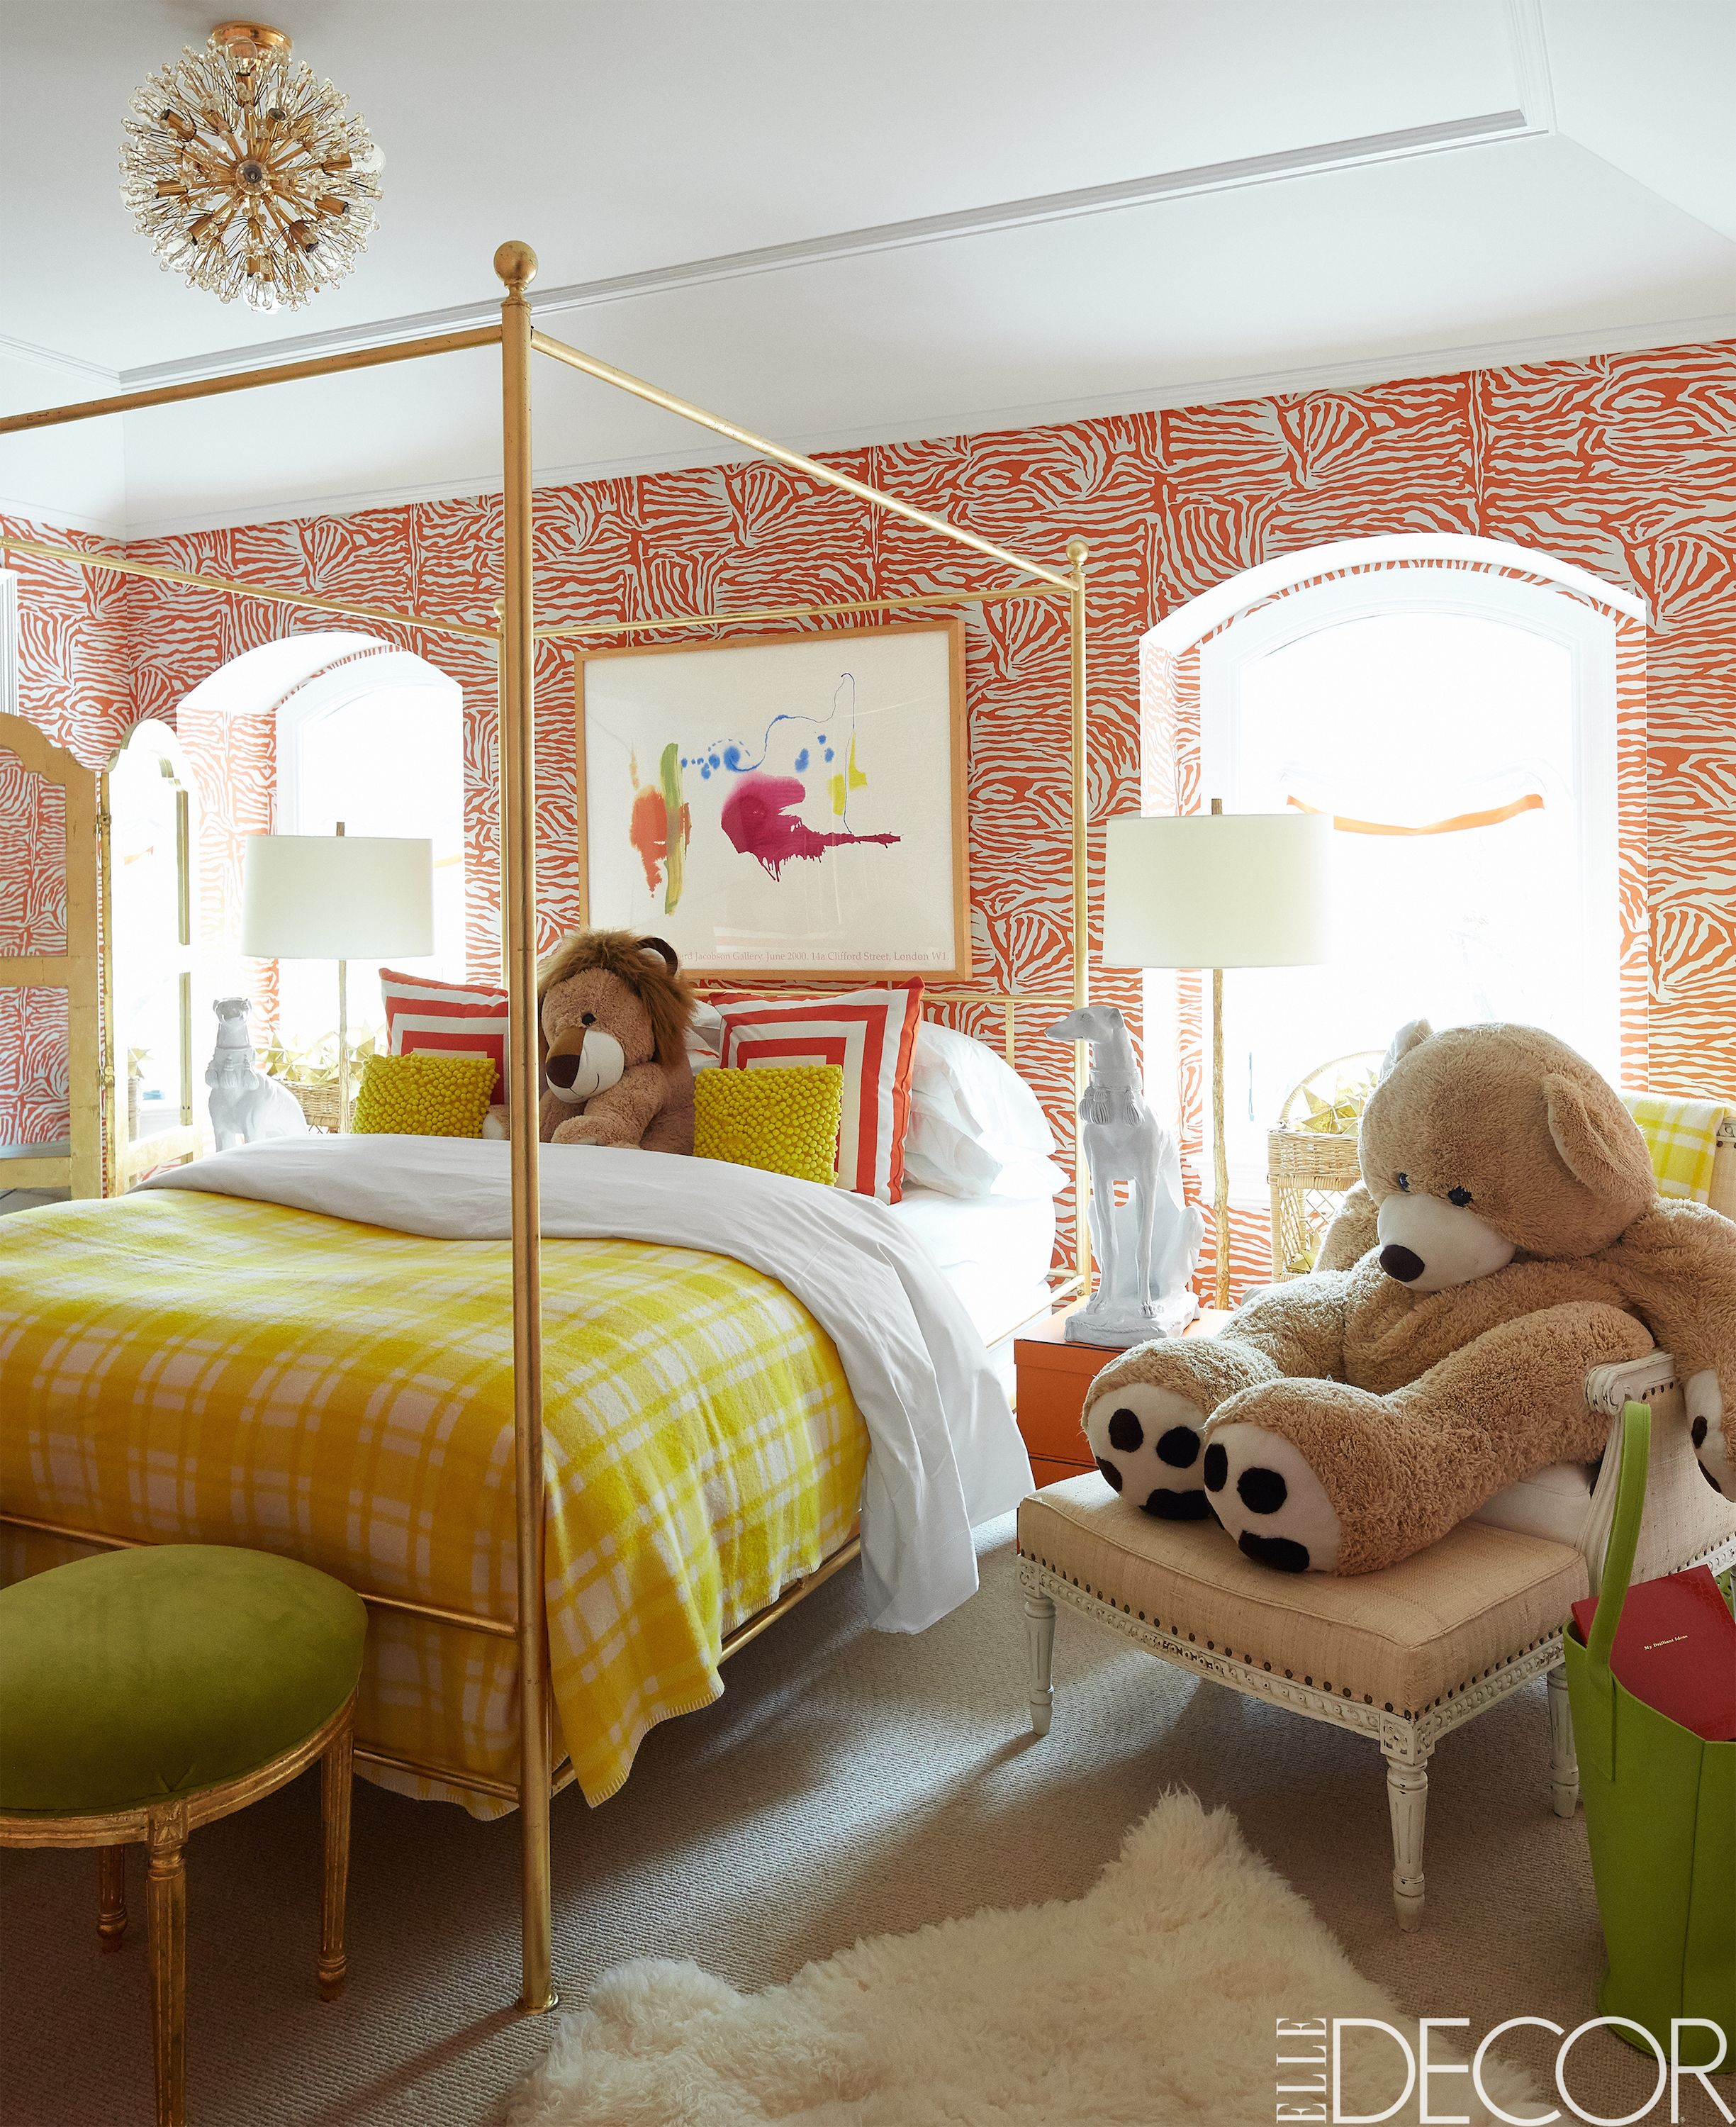 Bedroom designer for girls - Bedroom Designer For Girls 25